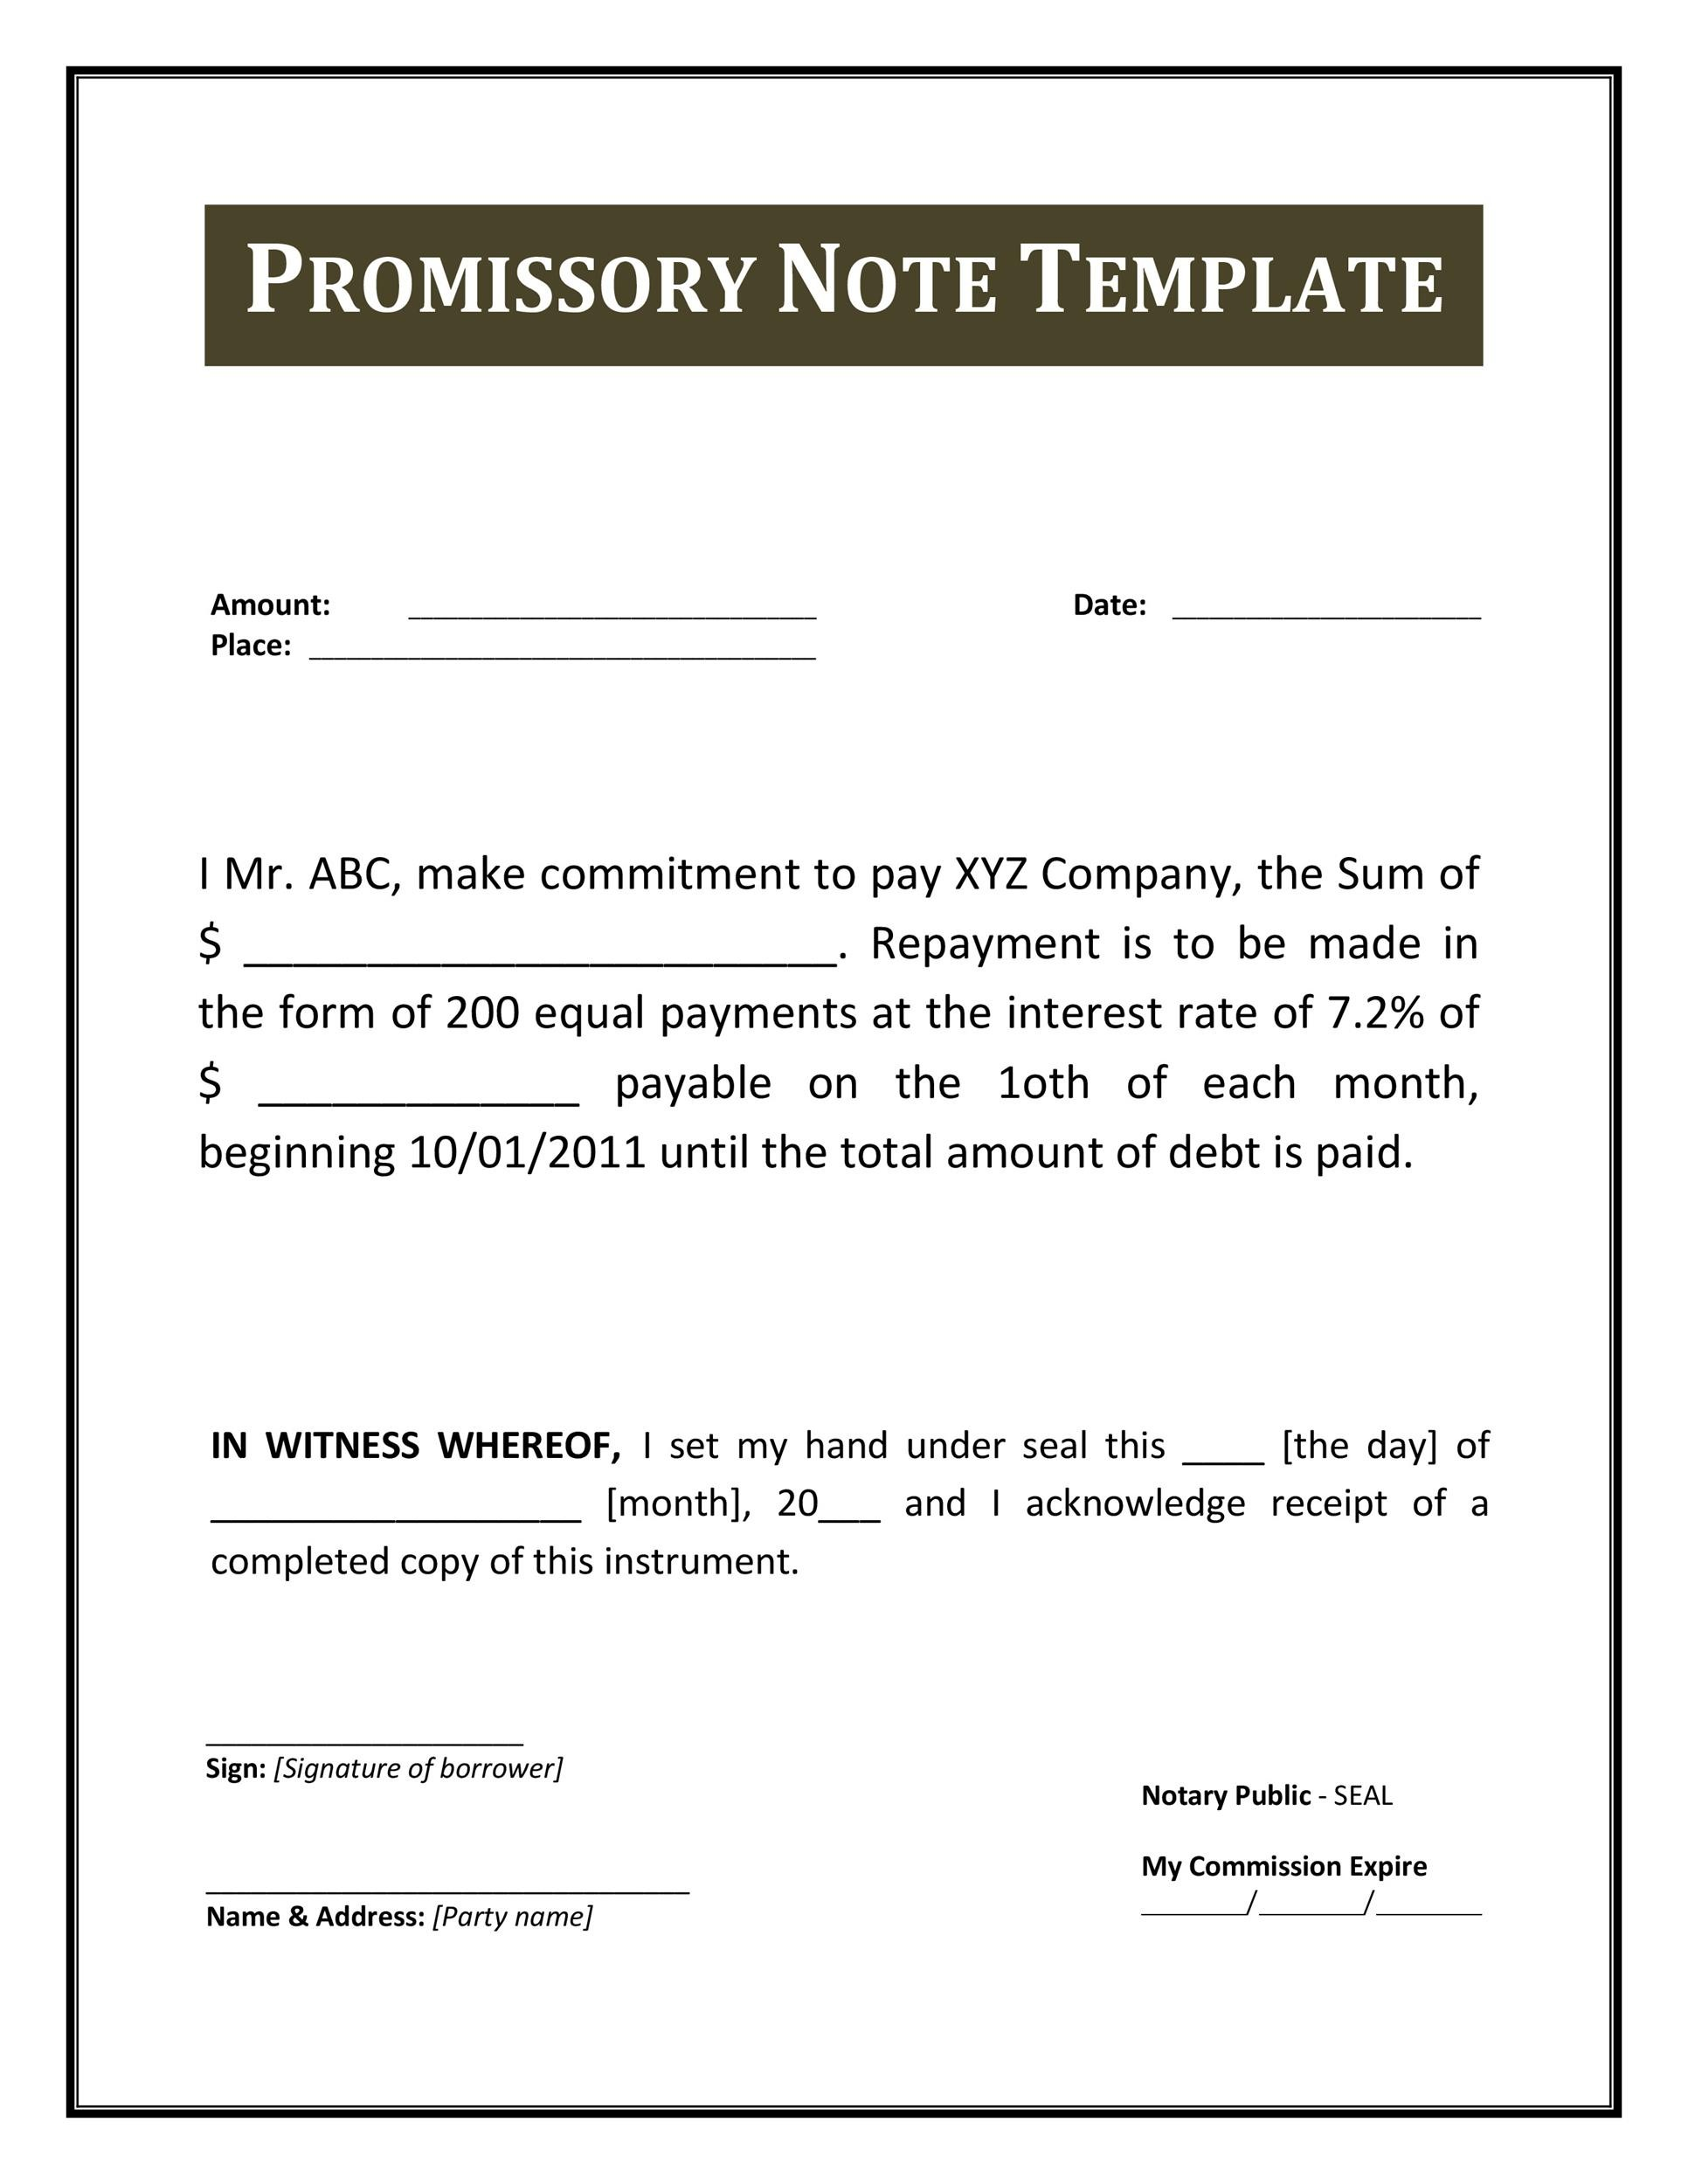 Sample promissory note altavistaventures Gallery